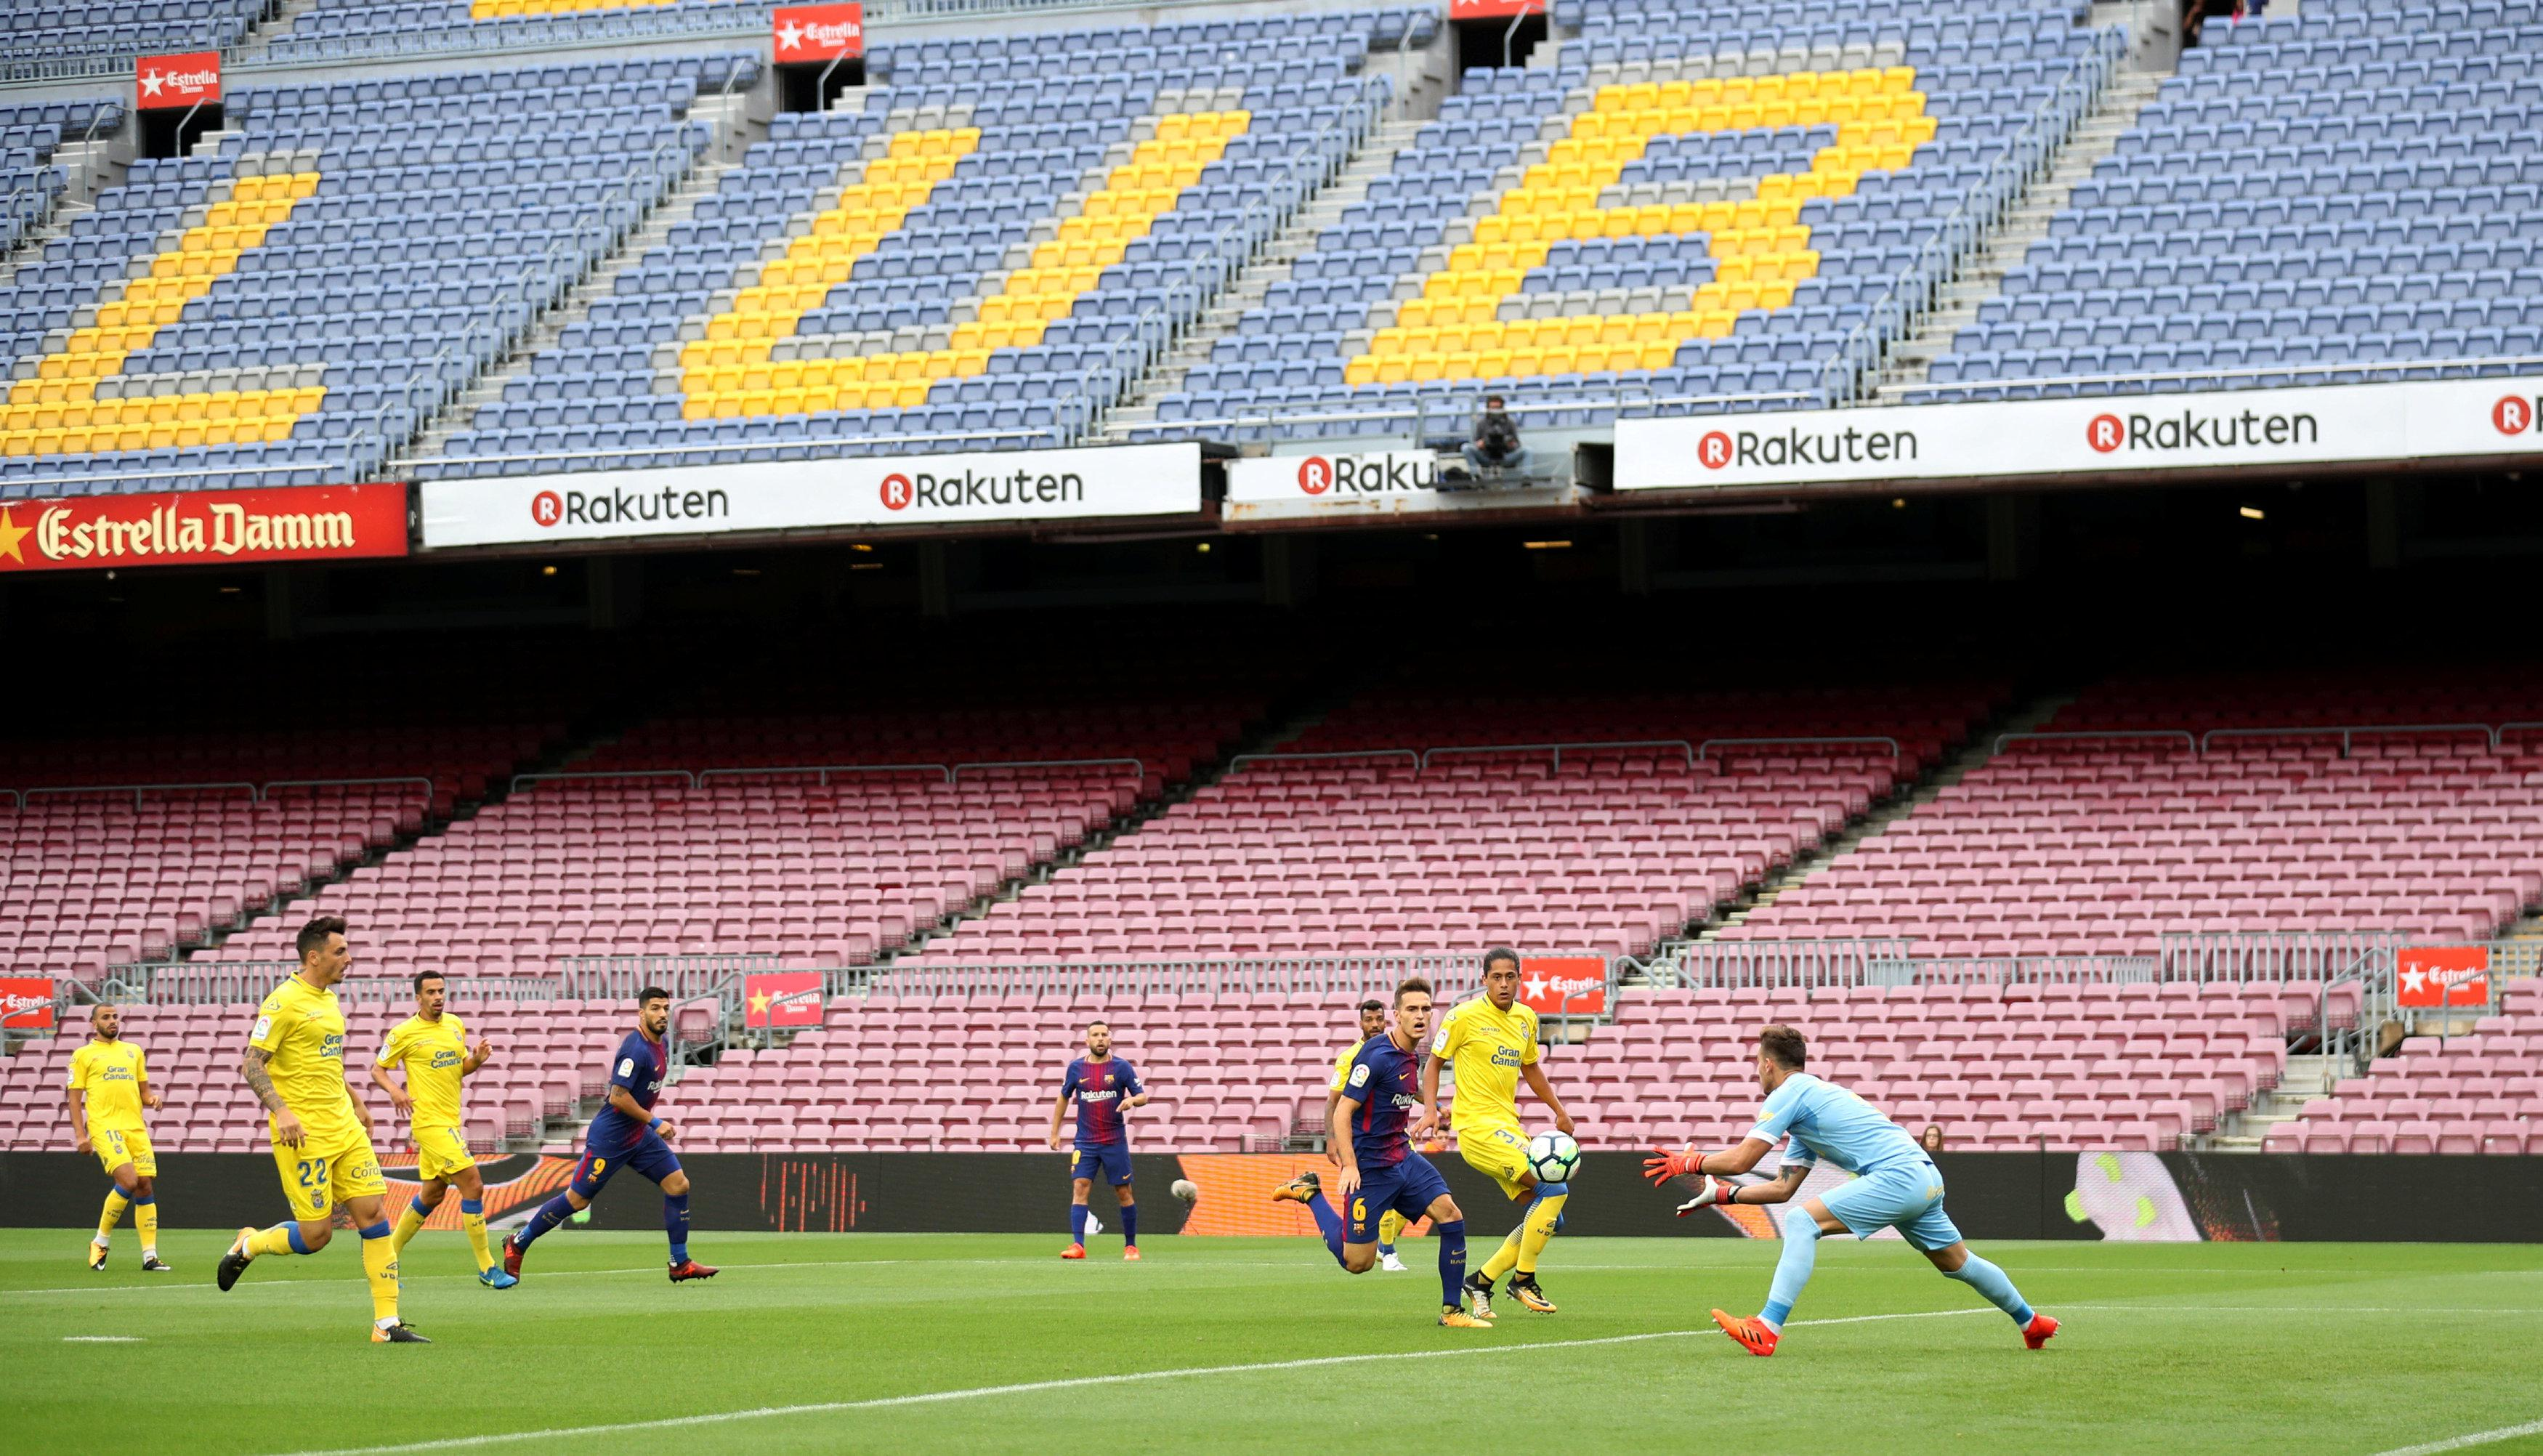 Barcelona's game against Las Palmas has gone ahead, inside an eerily empty Nou Camp